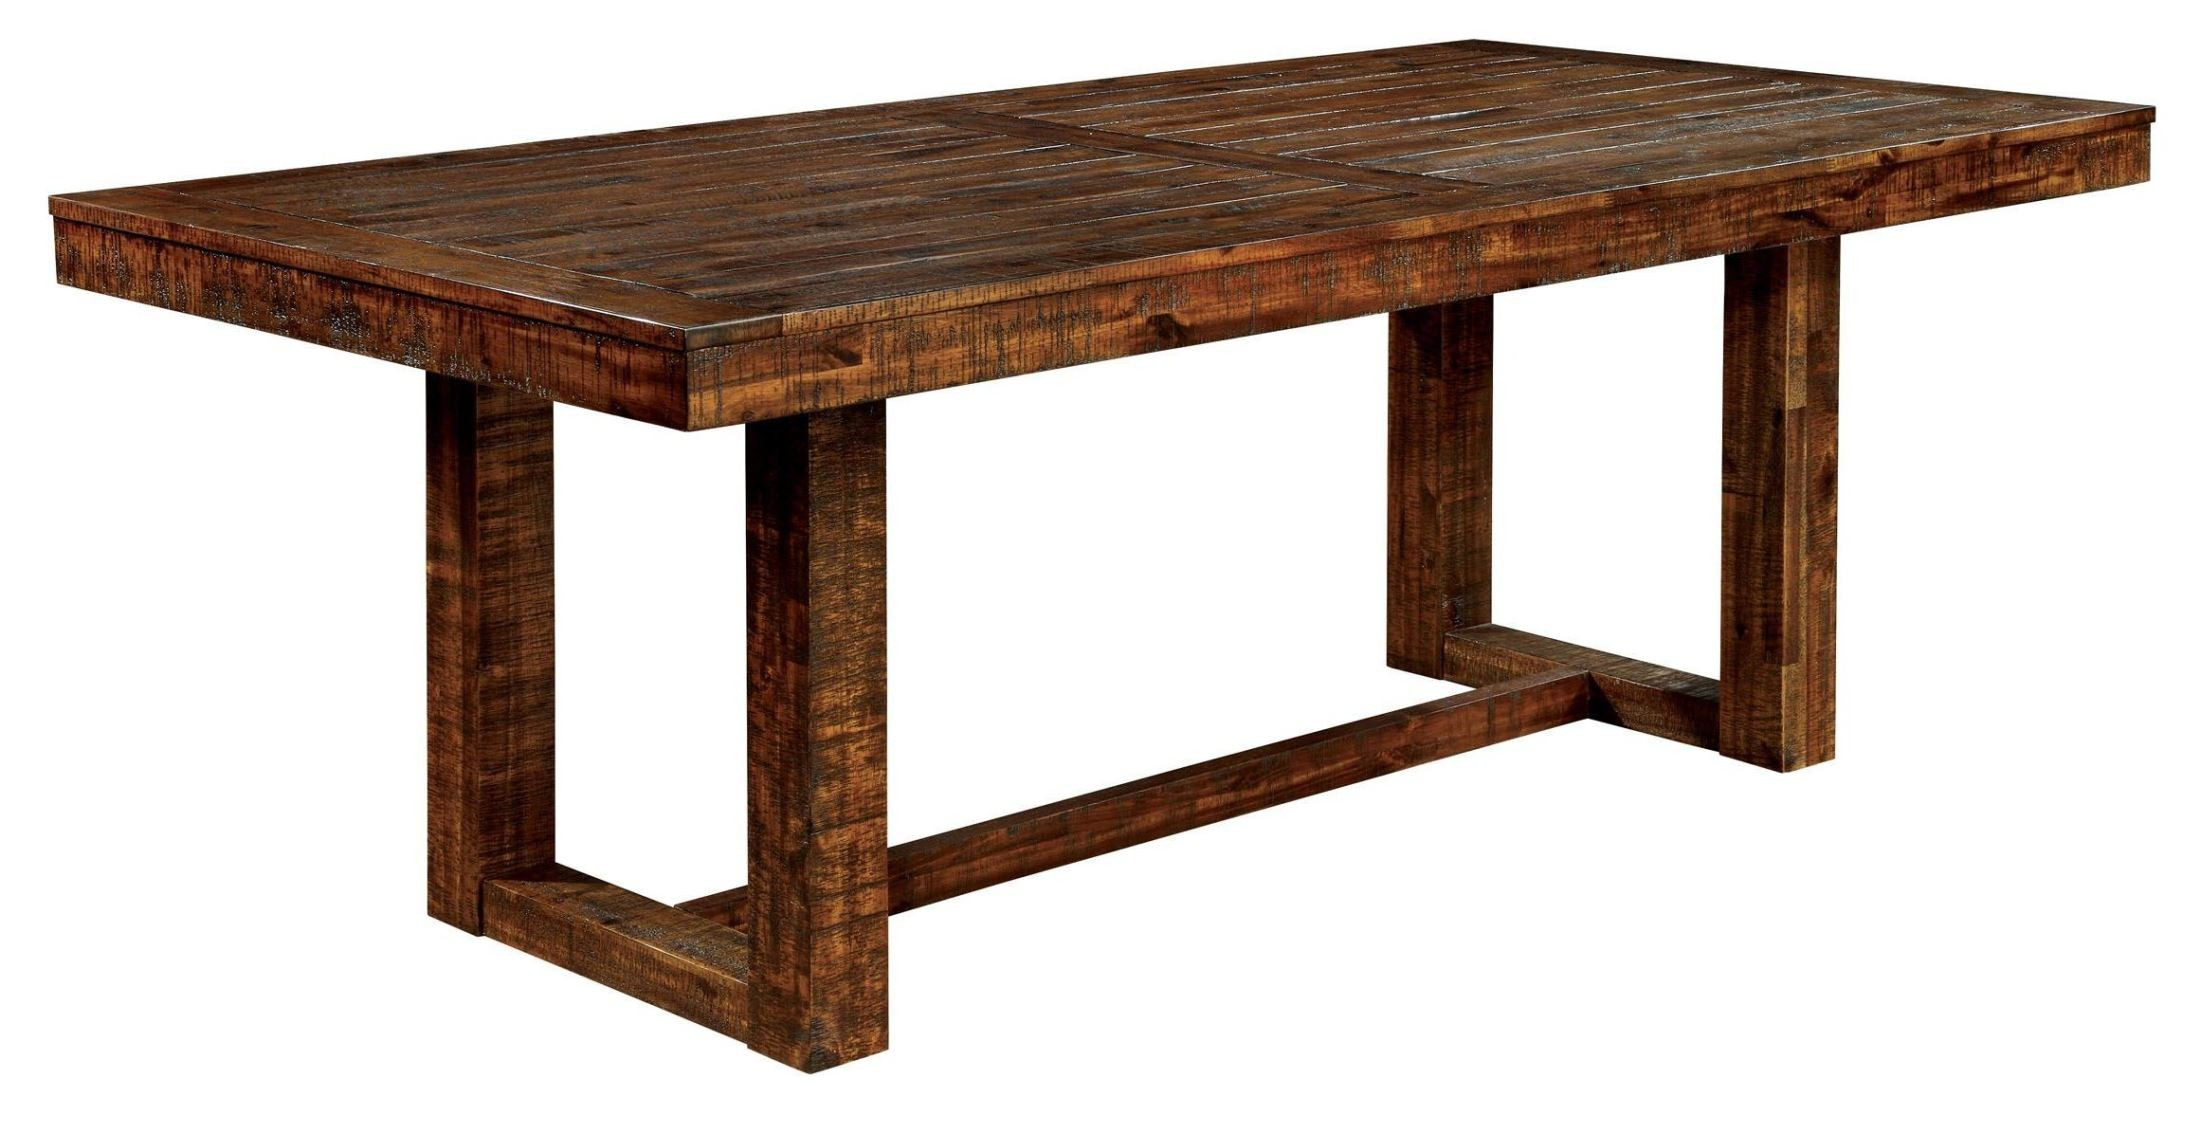 Garrison Rectangular Dining Table from Furniture of